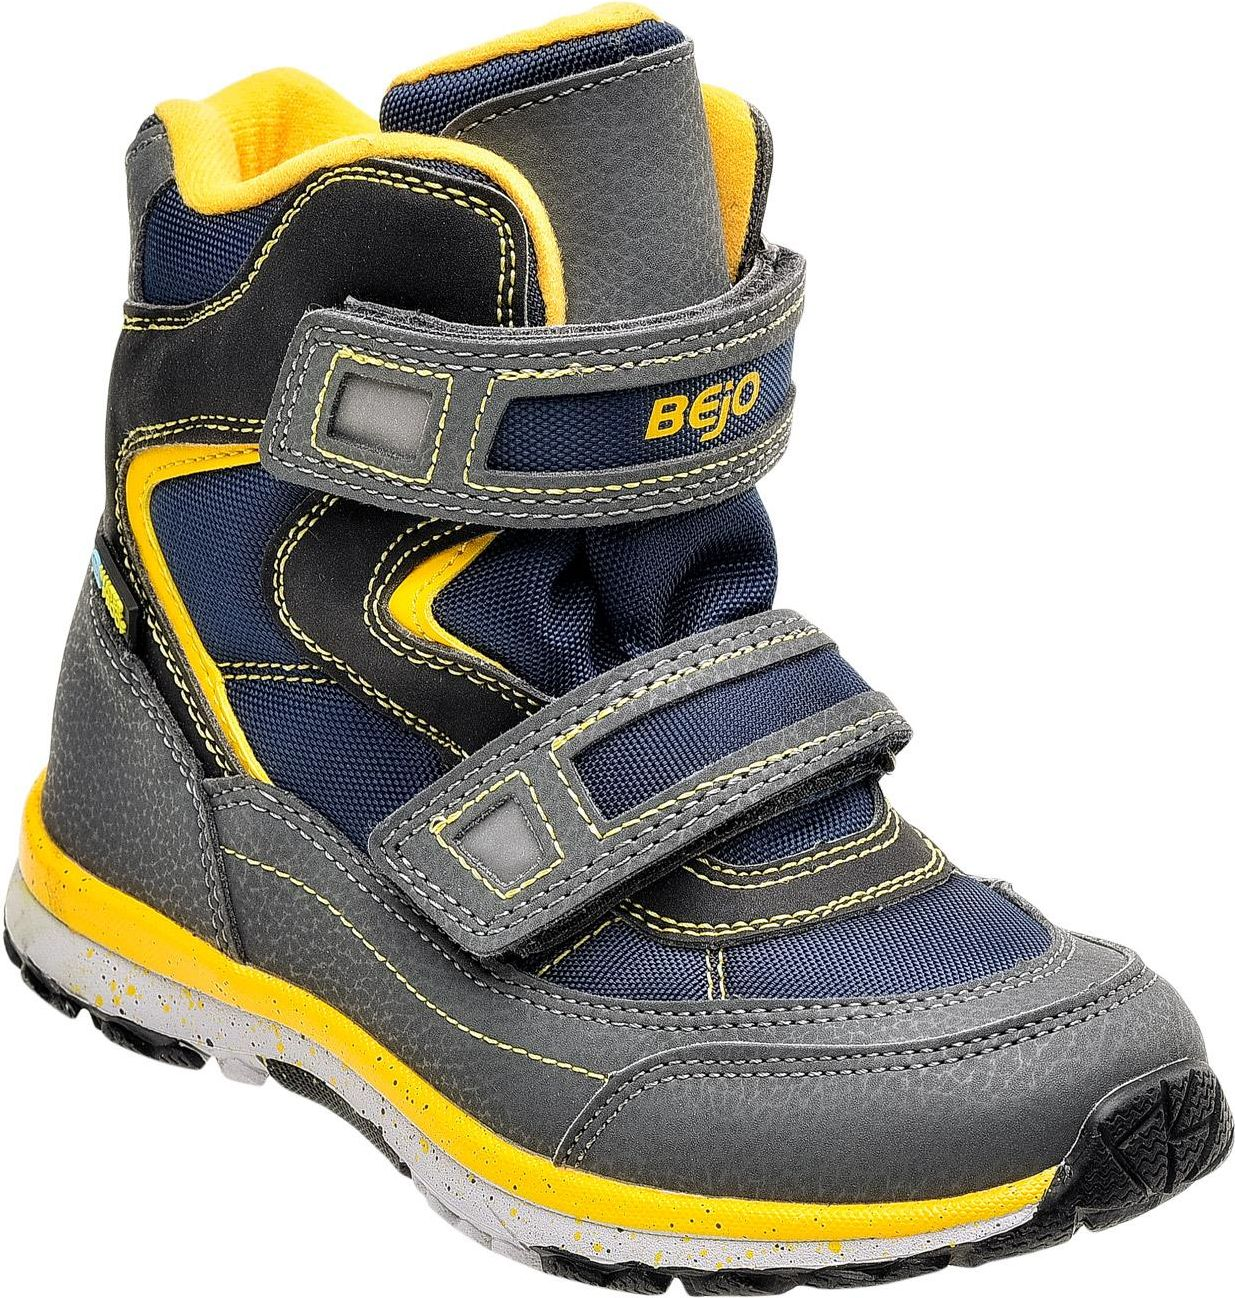 BEJO Buty dzieciece Piner Jr Navy/dark Grey/corn r. 29 5264518